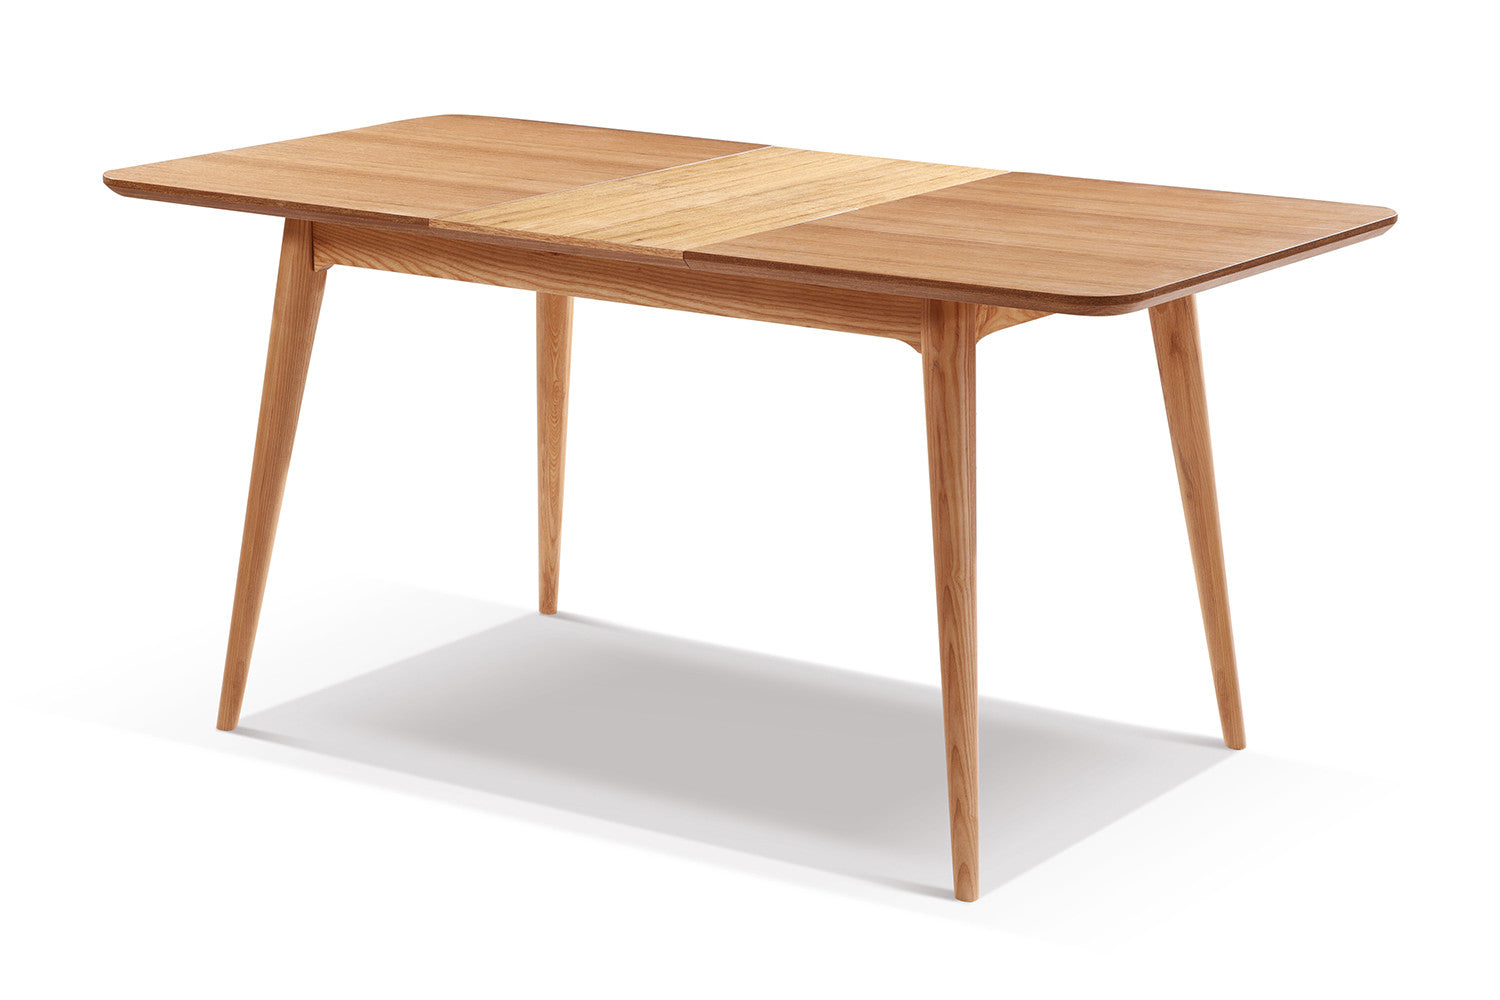 Table de salle manger extensible en bois adda dewarens for Table a manger a rallonge design